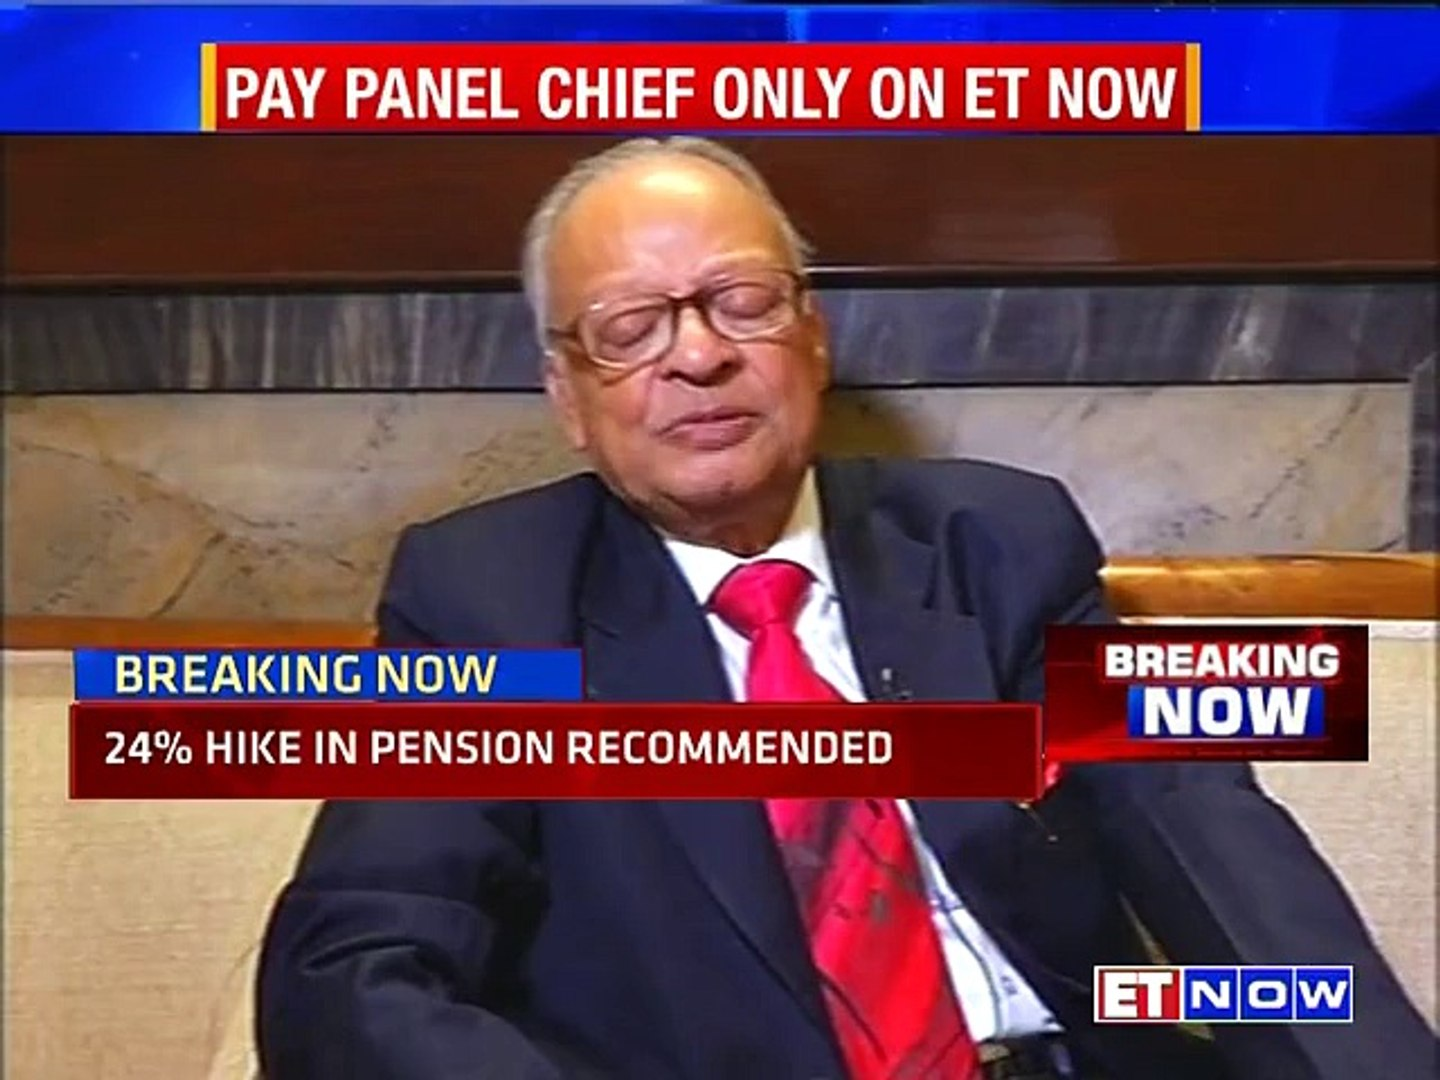 Pay Panel Chief Justice AK Mathur on th 7th Pay Commission recommendations